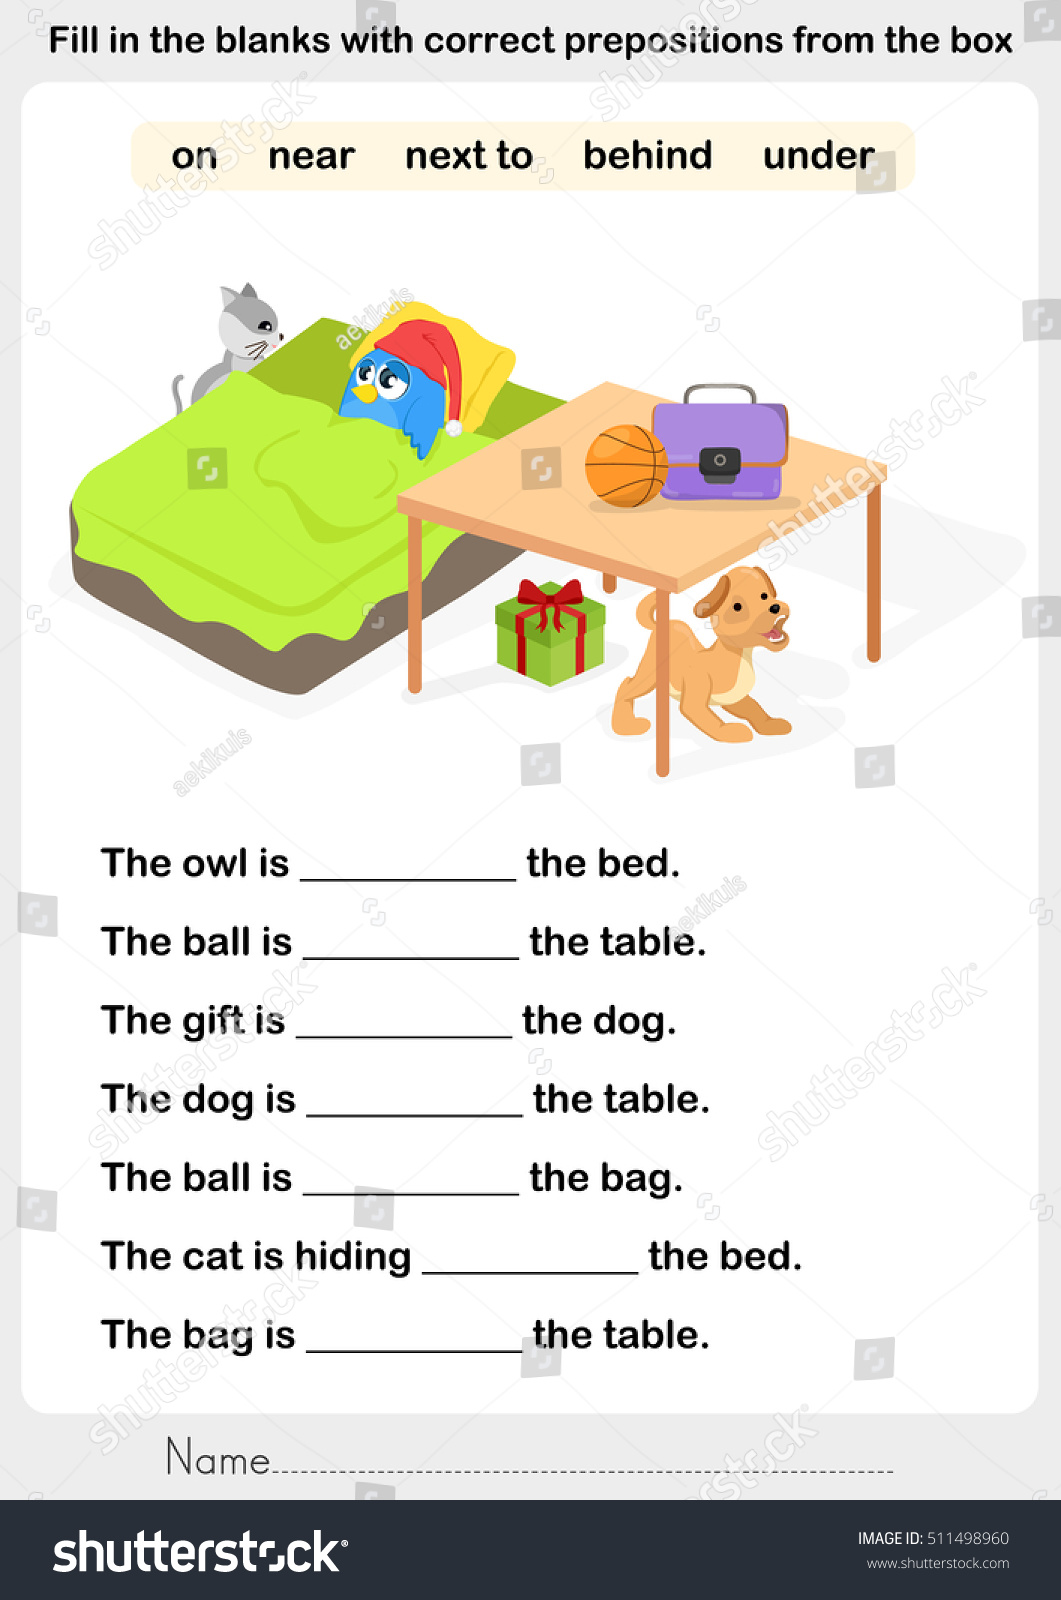 Fill Blanks Correct Prepositions Preposition Worksheet Stock Vector